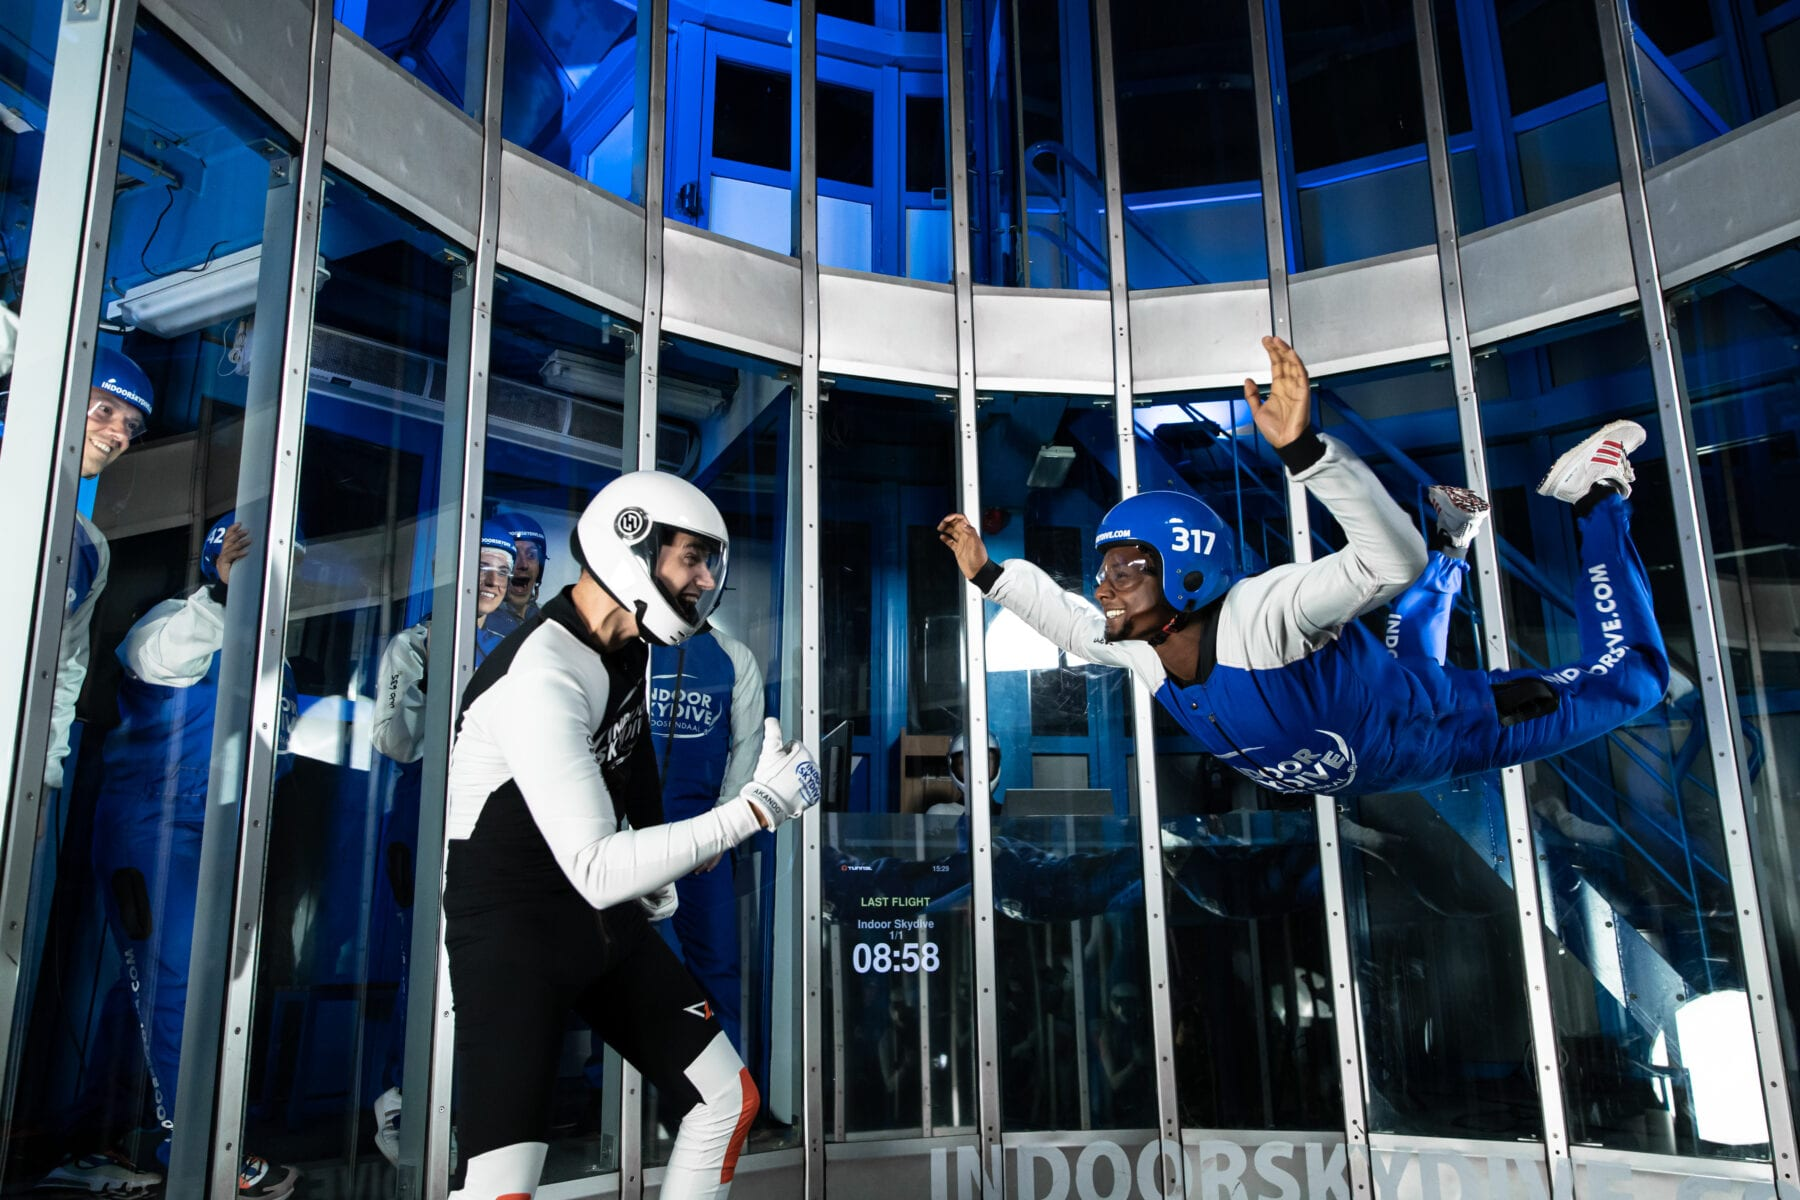 Indoor skydive virtual reality